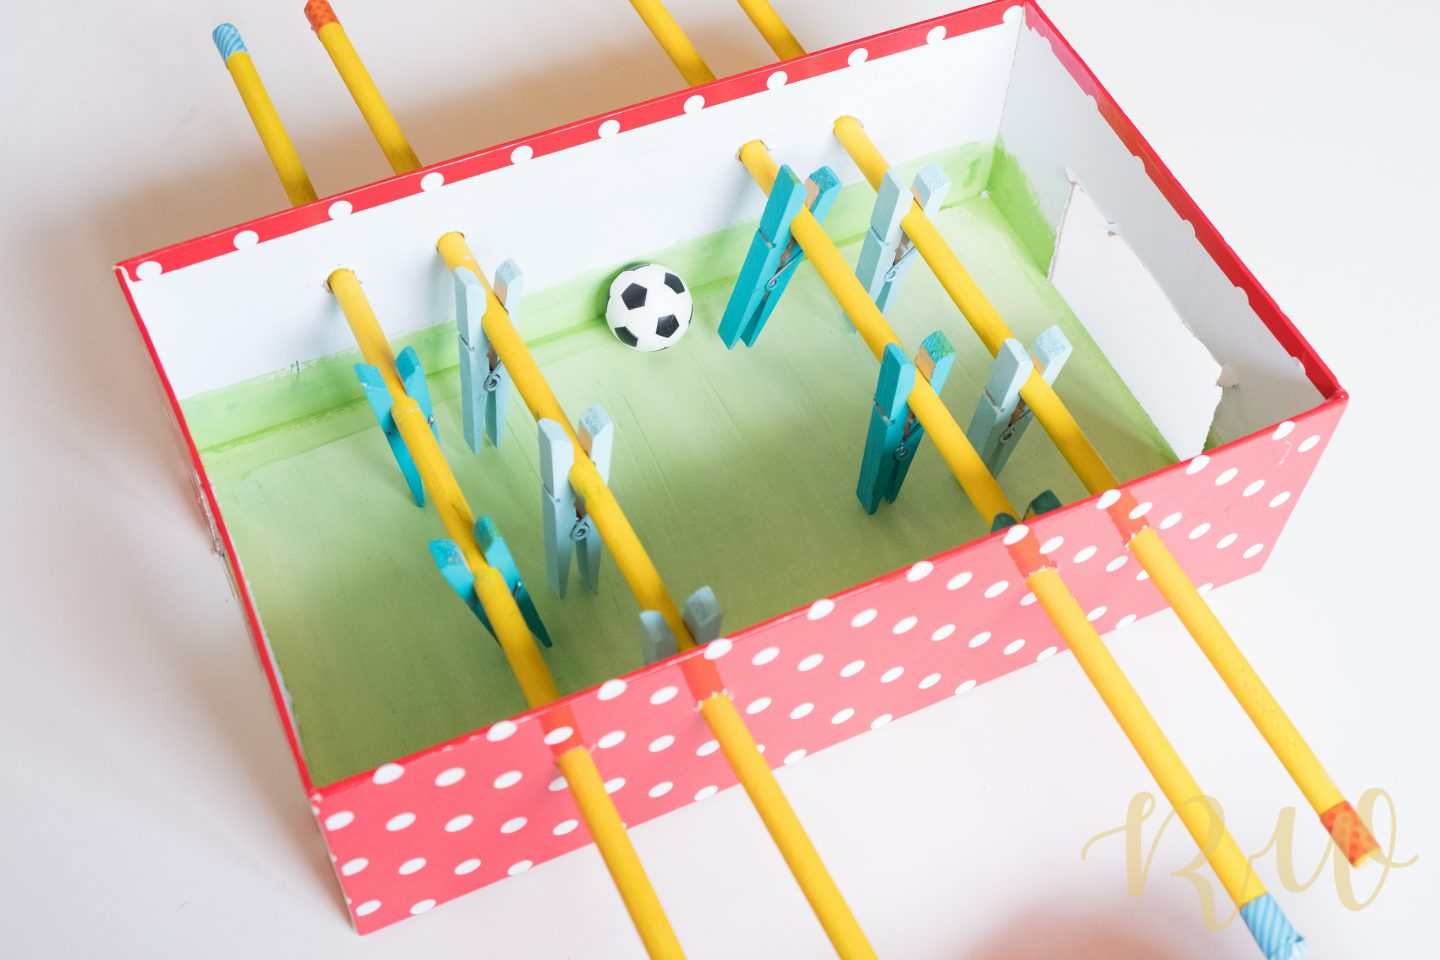 DIY Mini Foosball Table for Kids